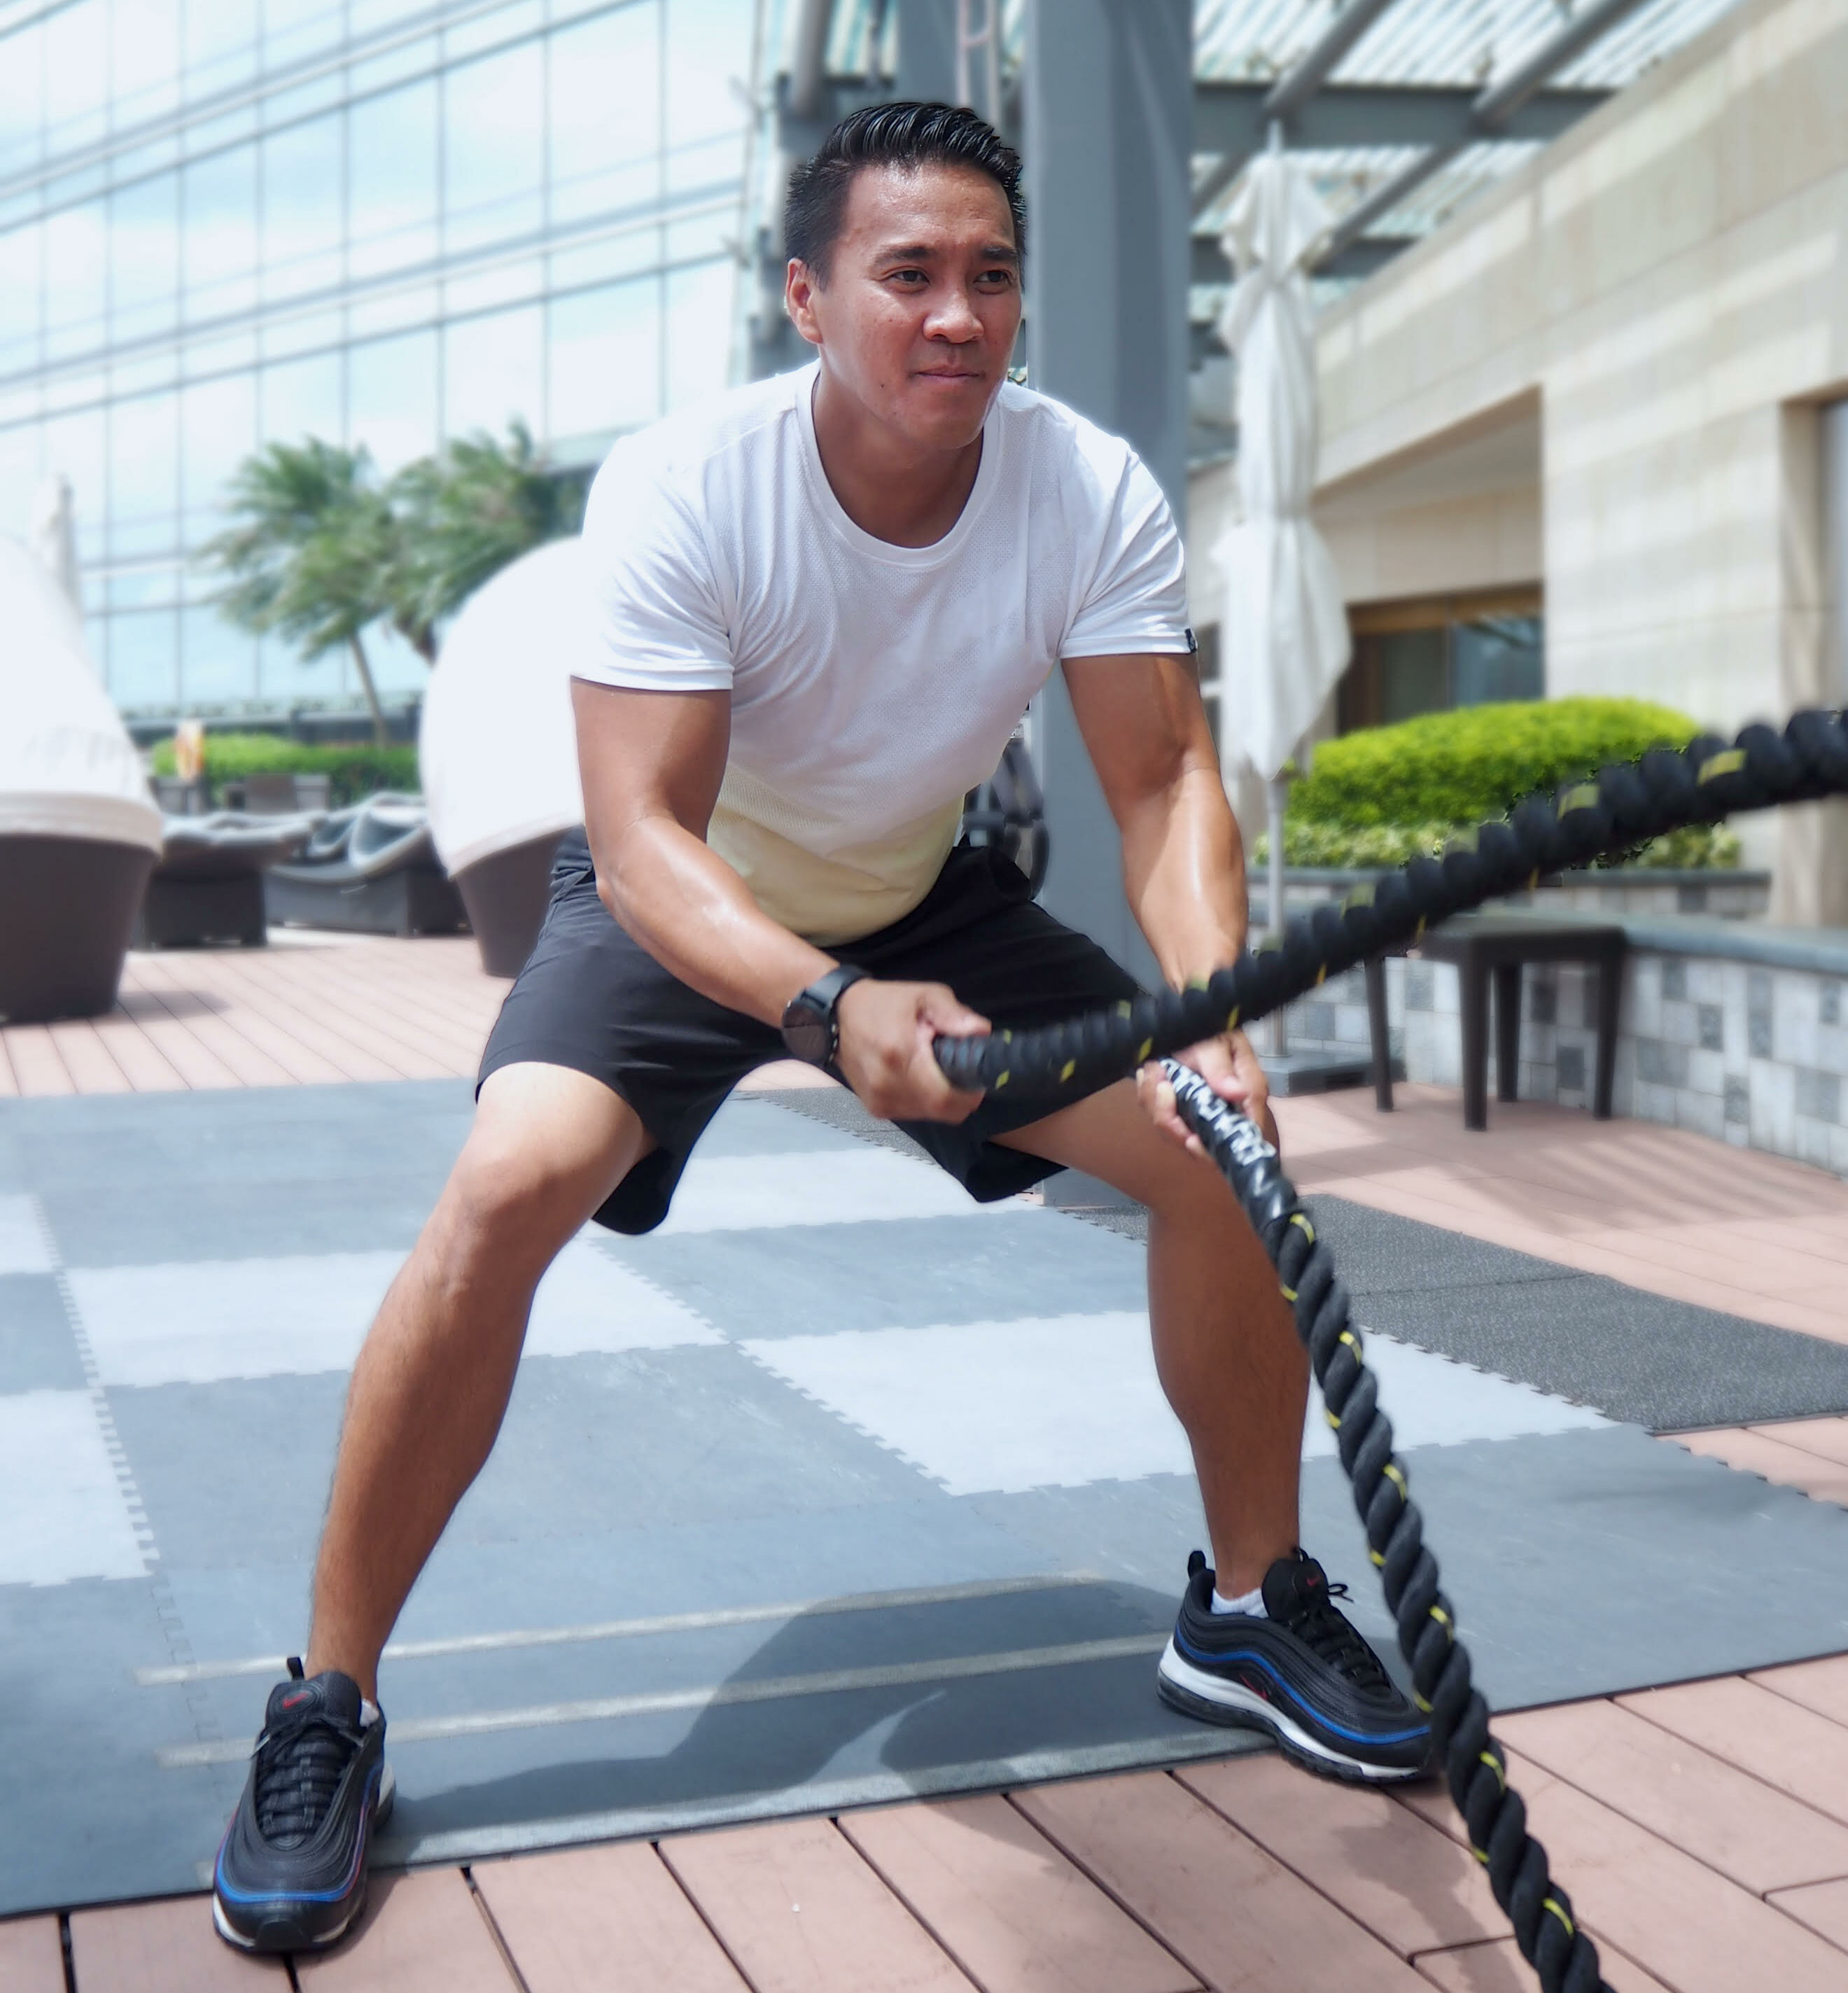 mandarin oriental fitness macau october 2020